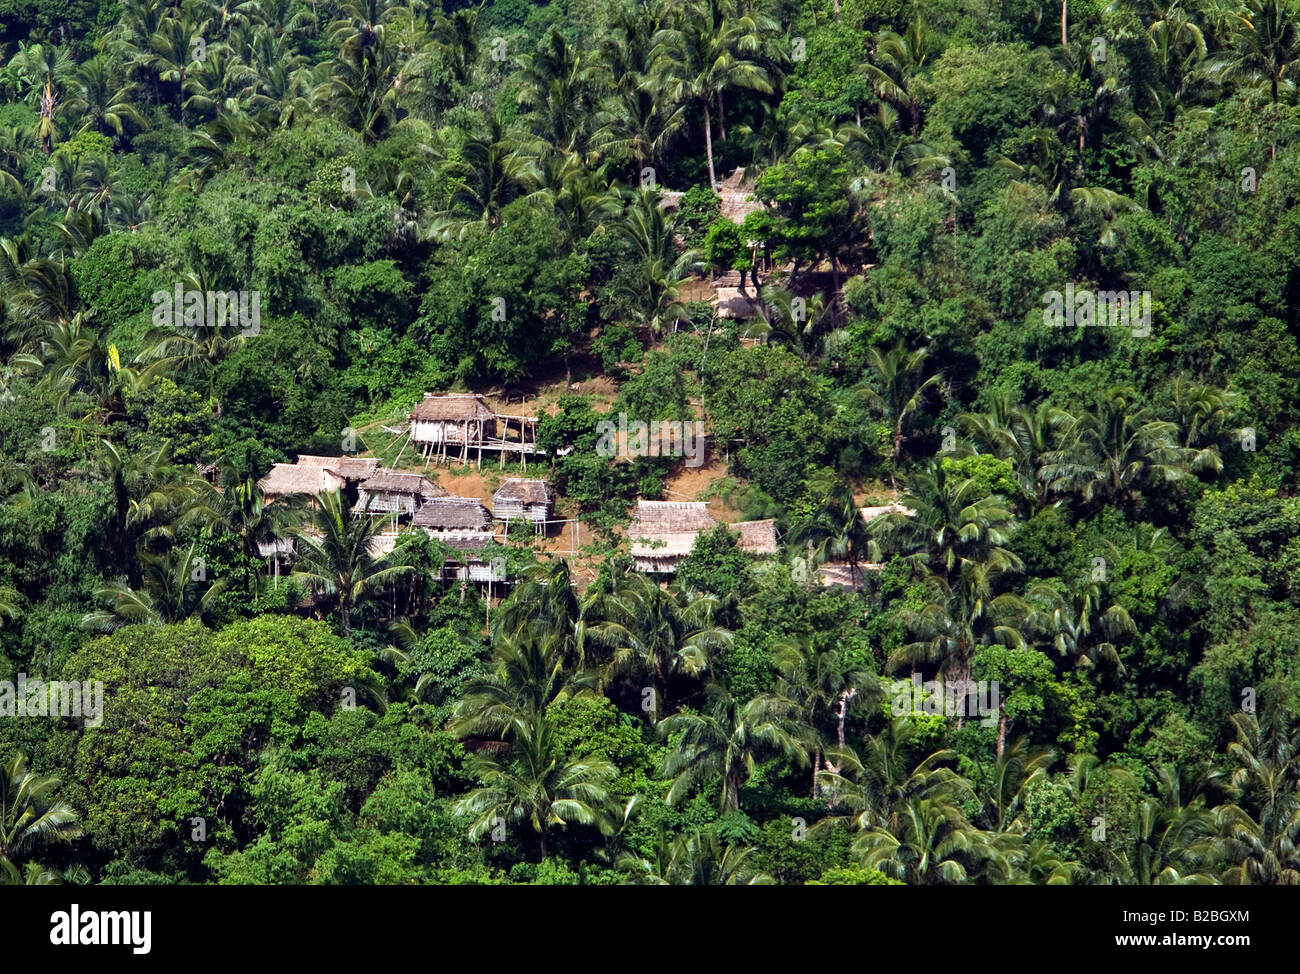 A view of Mangyan huts in the Panaytayan community near Mansalay, Oriental Mindoro, Philippines. - Stock Image